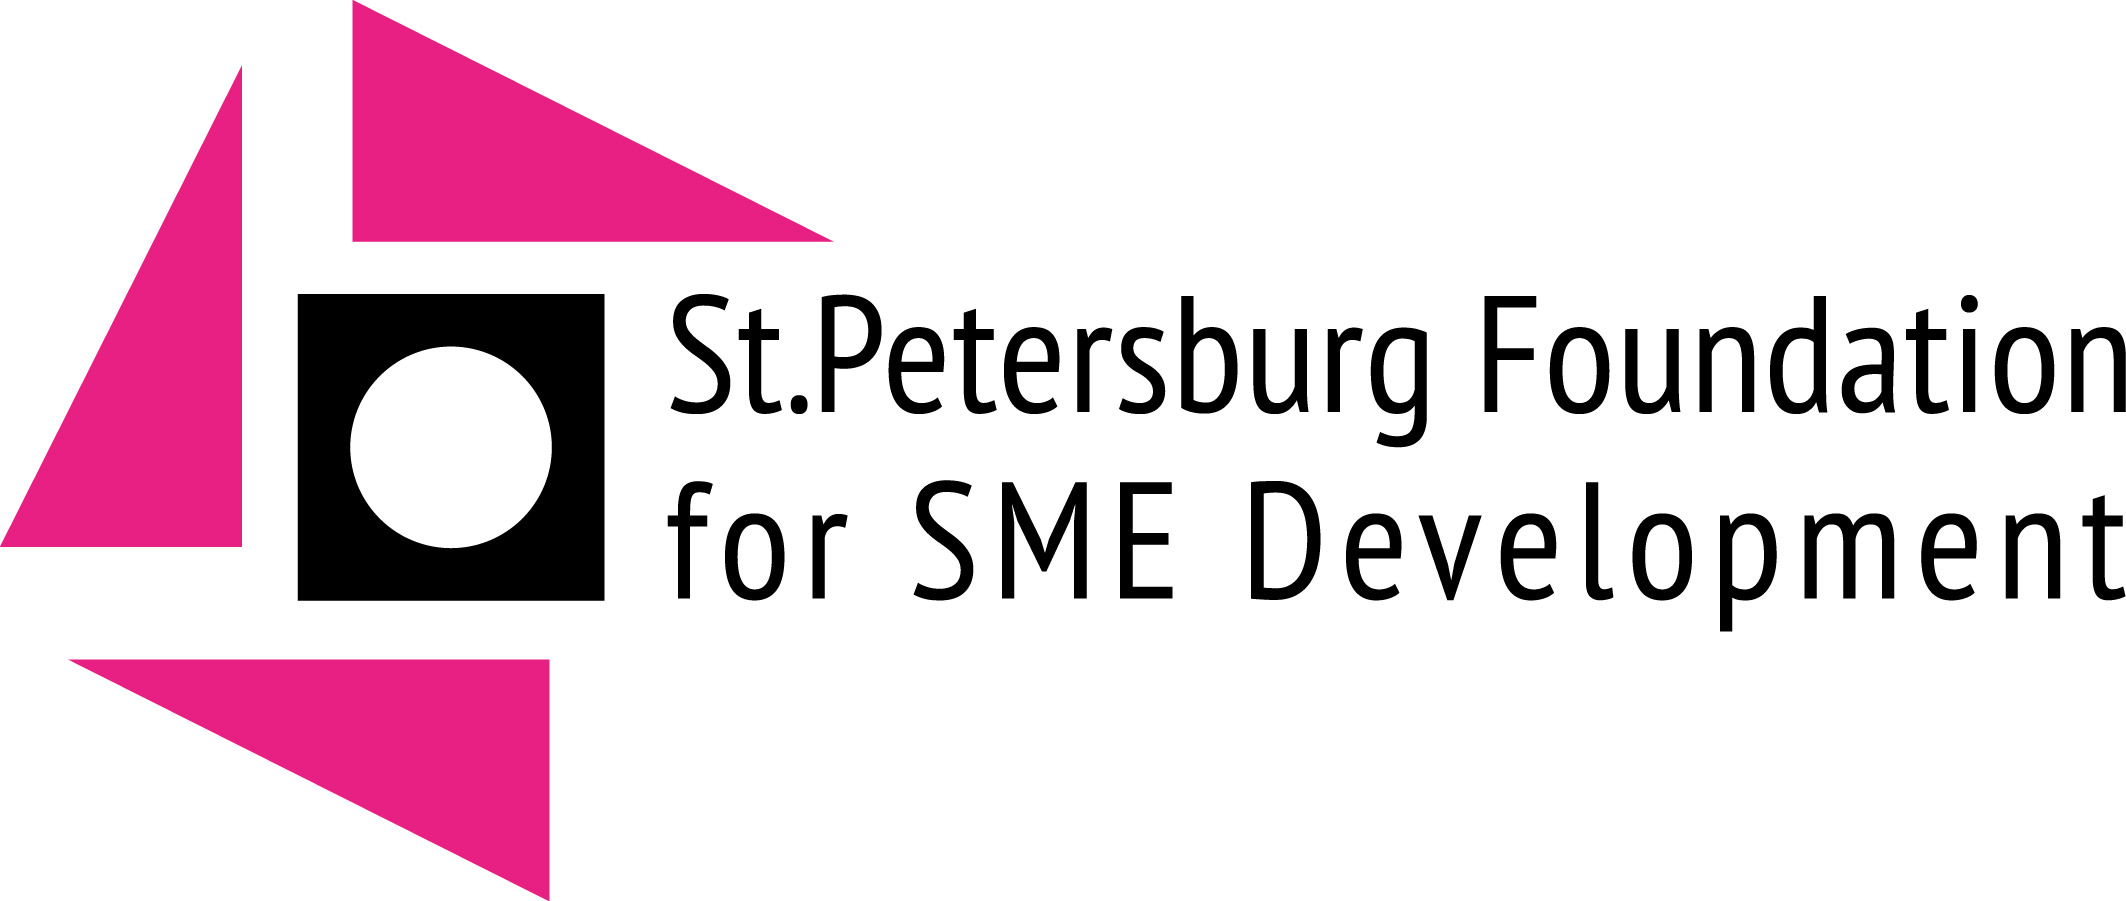 St. Petersburg Foundation for Small and Medium-sized Enterprise Development